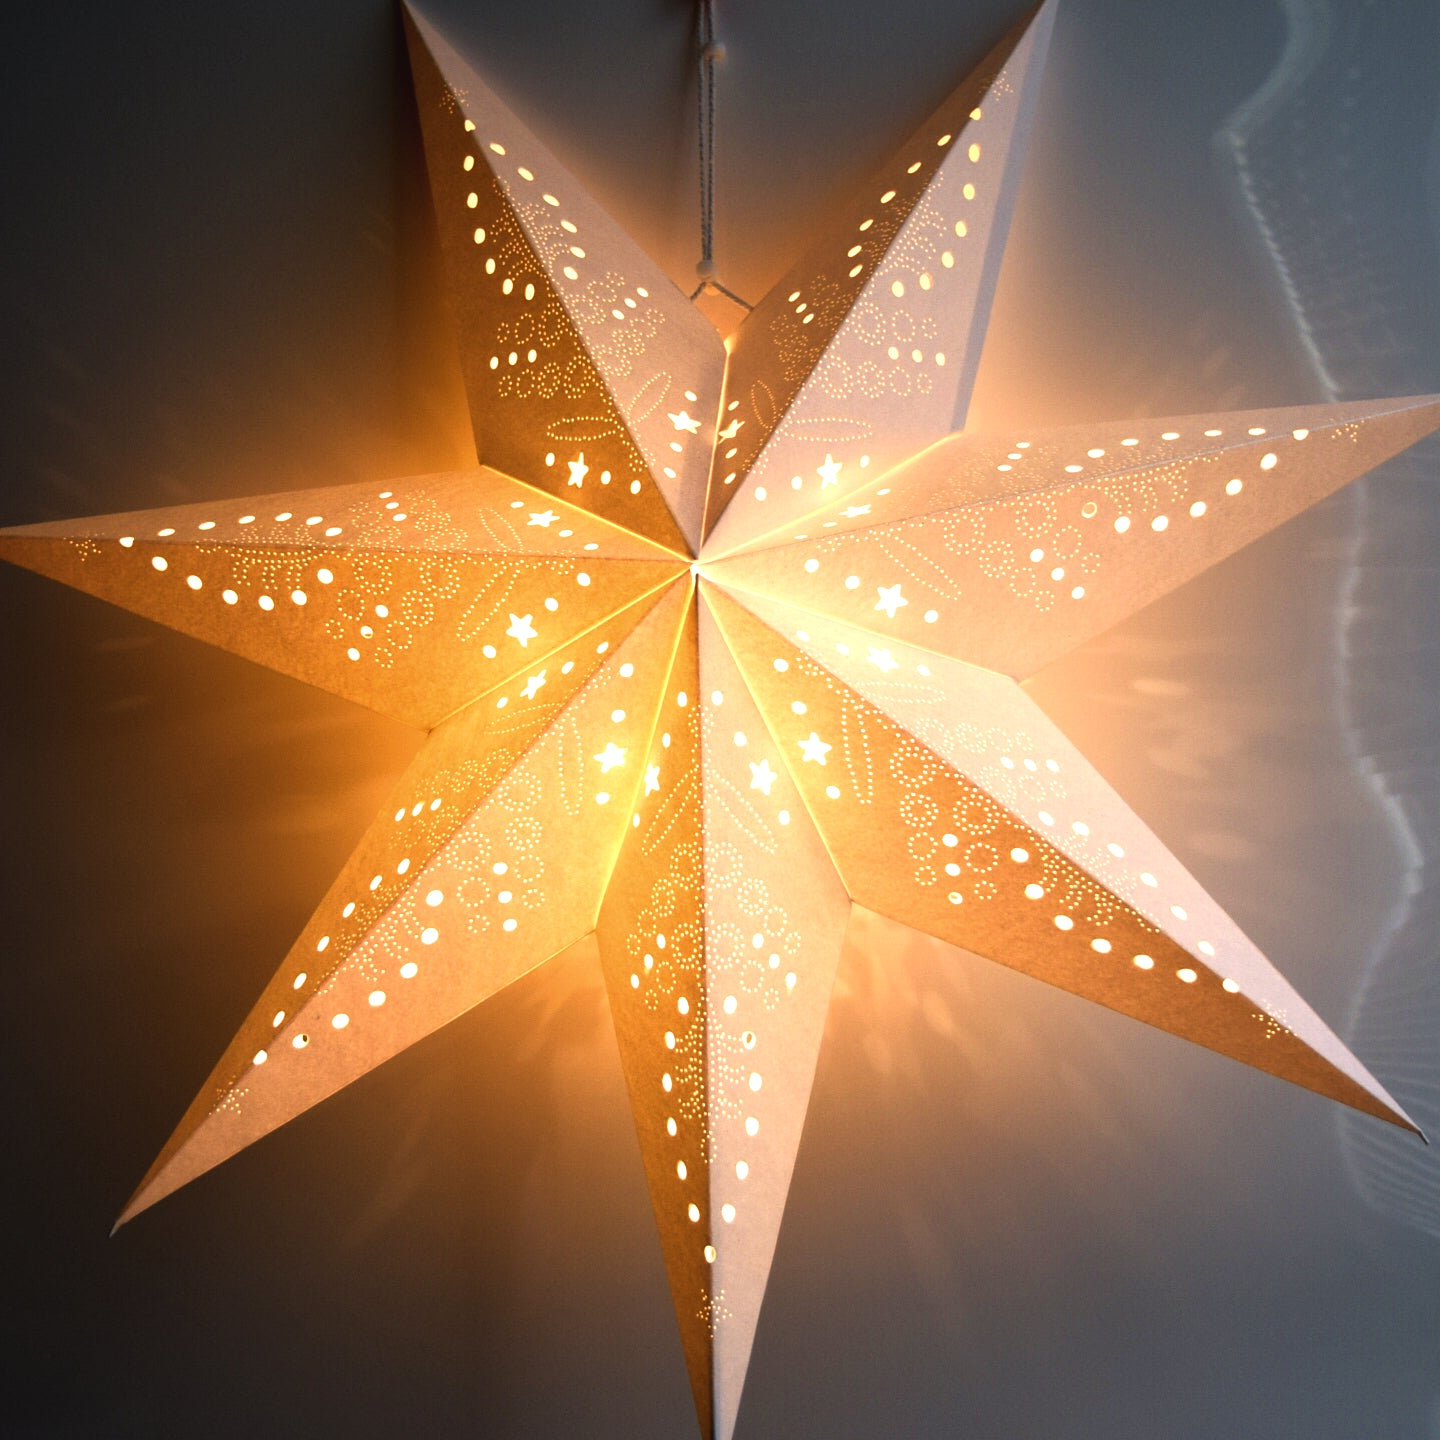 Paper Star Lantern Decoration 22 Inch Frosted White 7 Point Glitter S Willbrite Com Gifts Decor That Make People Happy